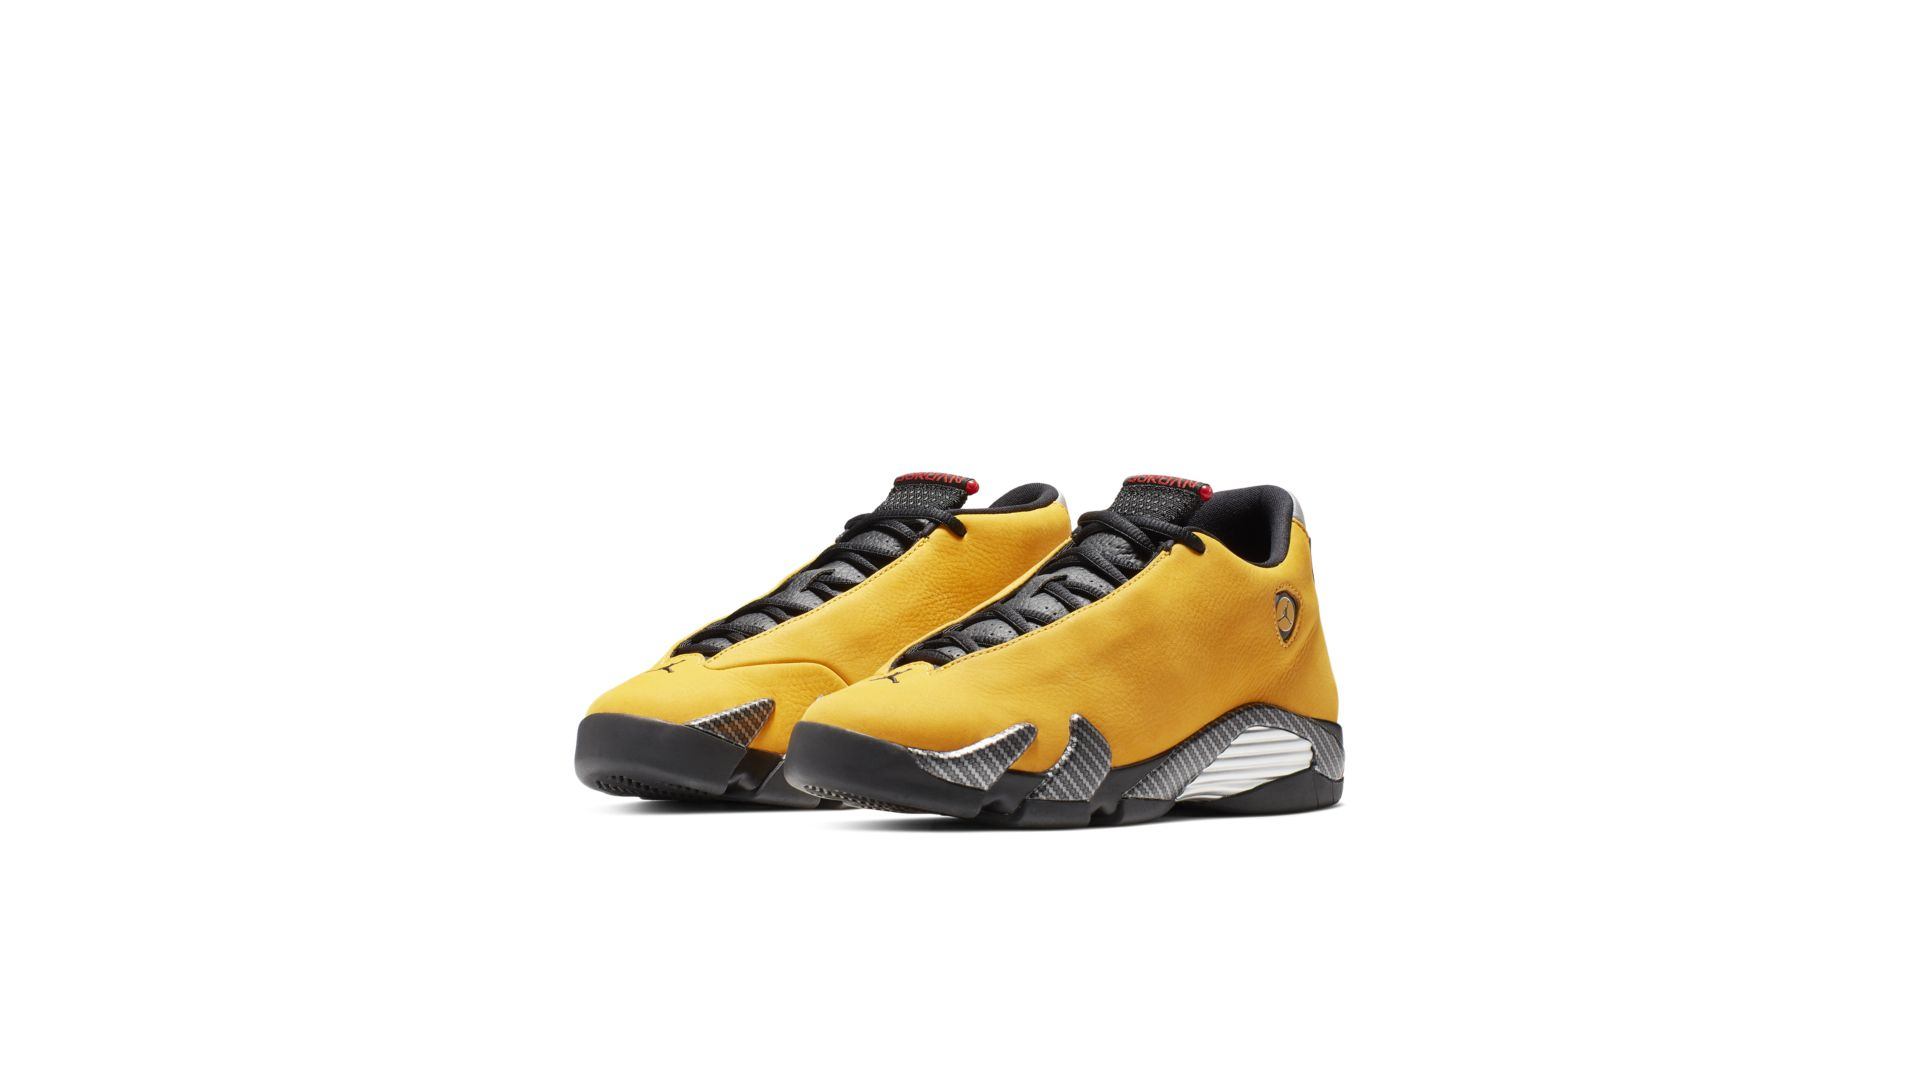 Jordan 14 Retro Ferrari University Gold (GS) (BV1218-706)